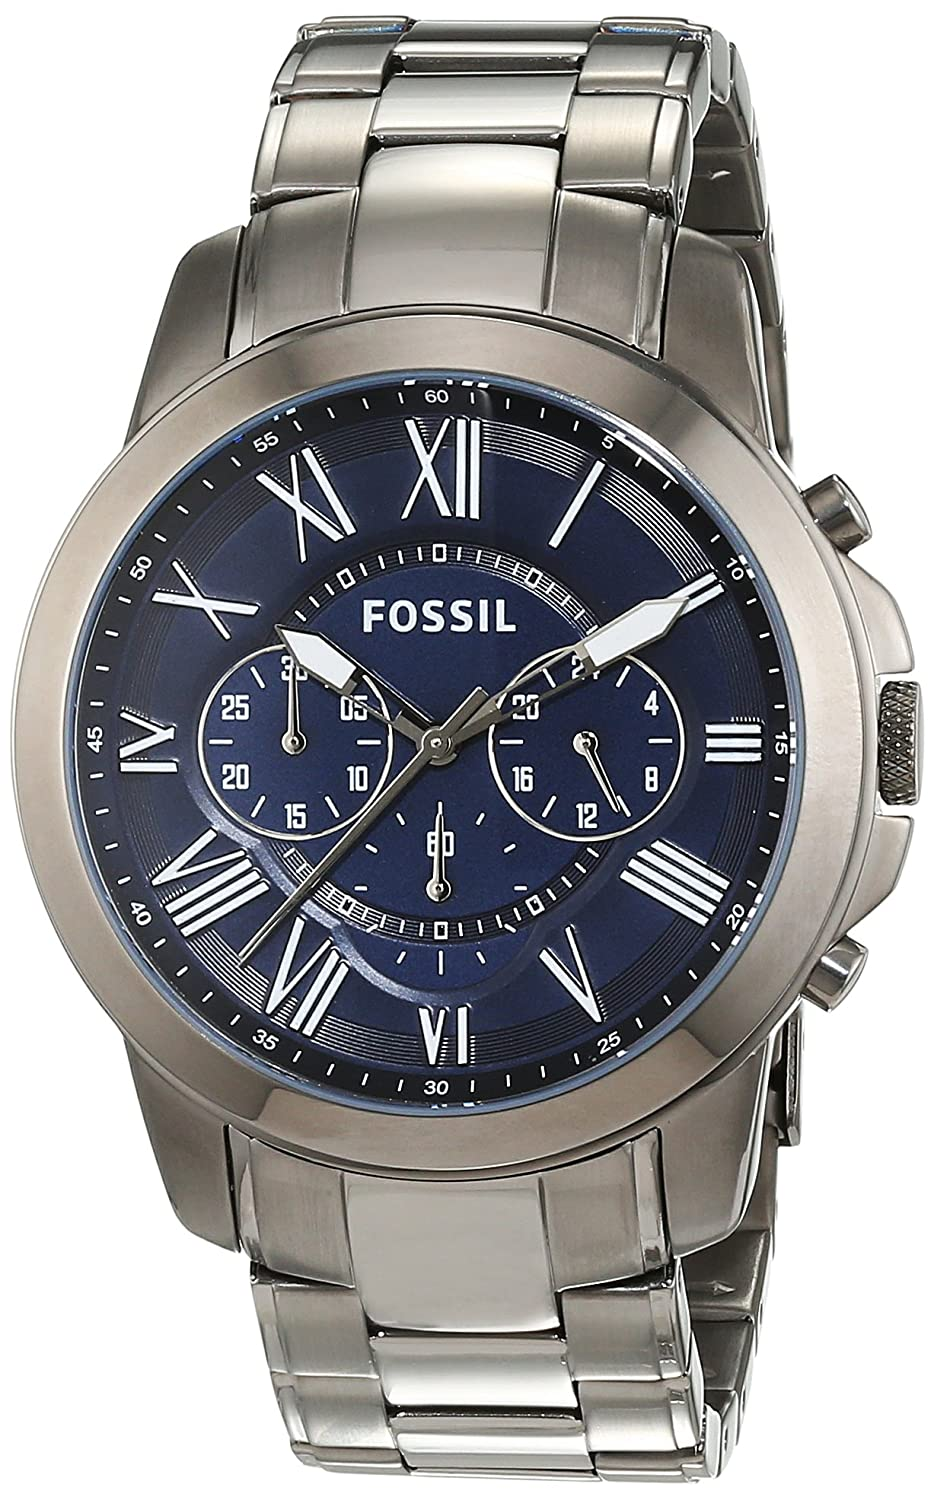 Amazon.com: Fossil Mens FS4831 Grant Chronograph Smoke-Tone Stainless Steel Watch: Fossil: Watches